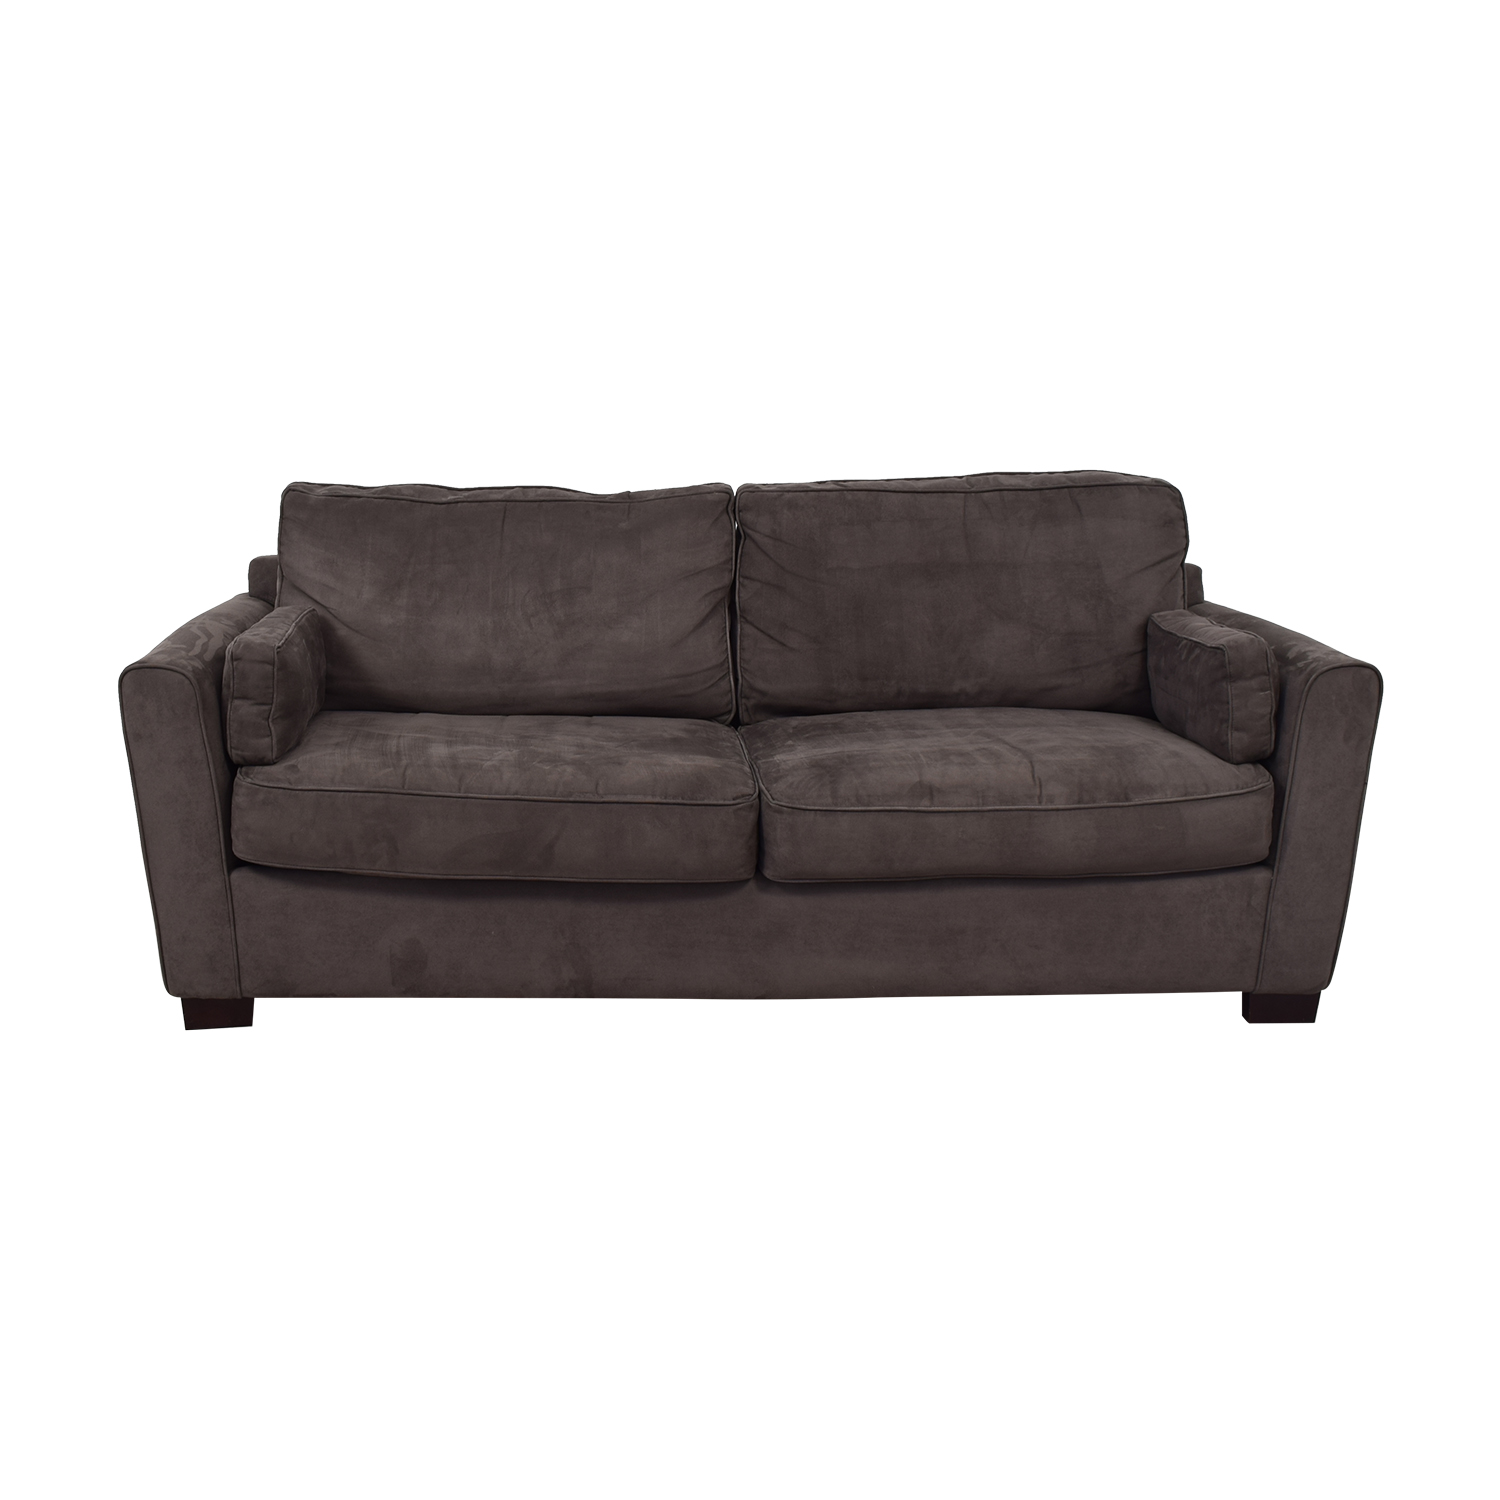 Bloomingdale's Bloomingdale's Microsuede Two Cushion Sofa used